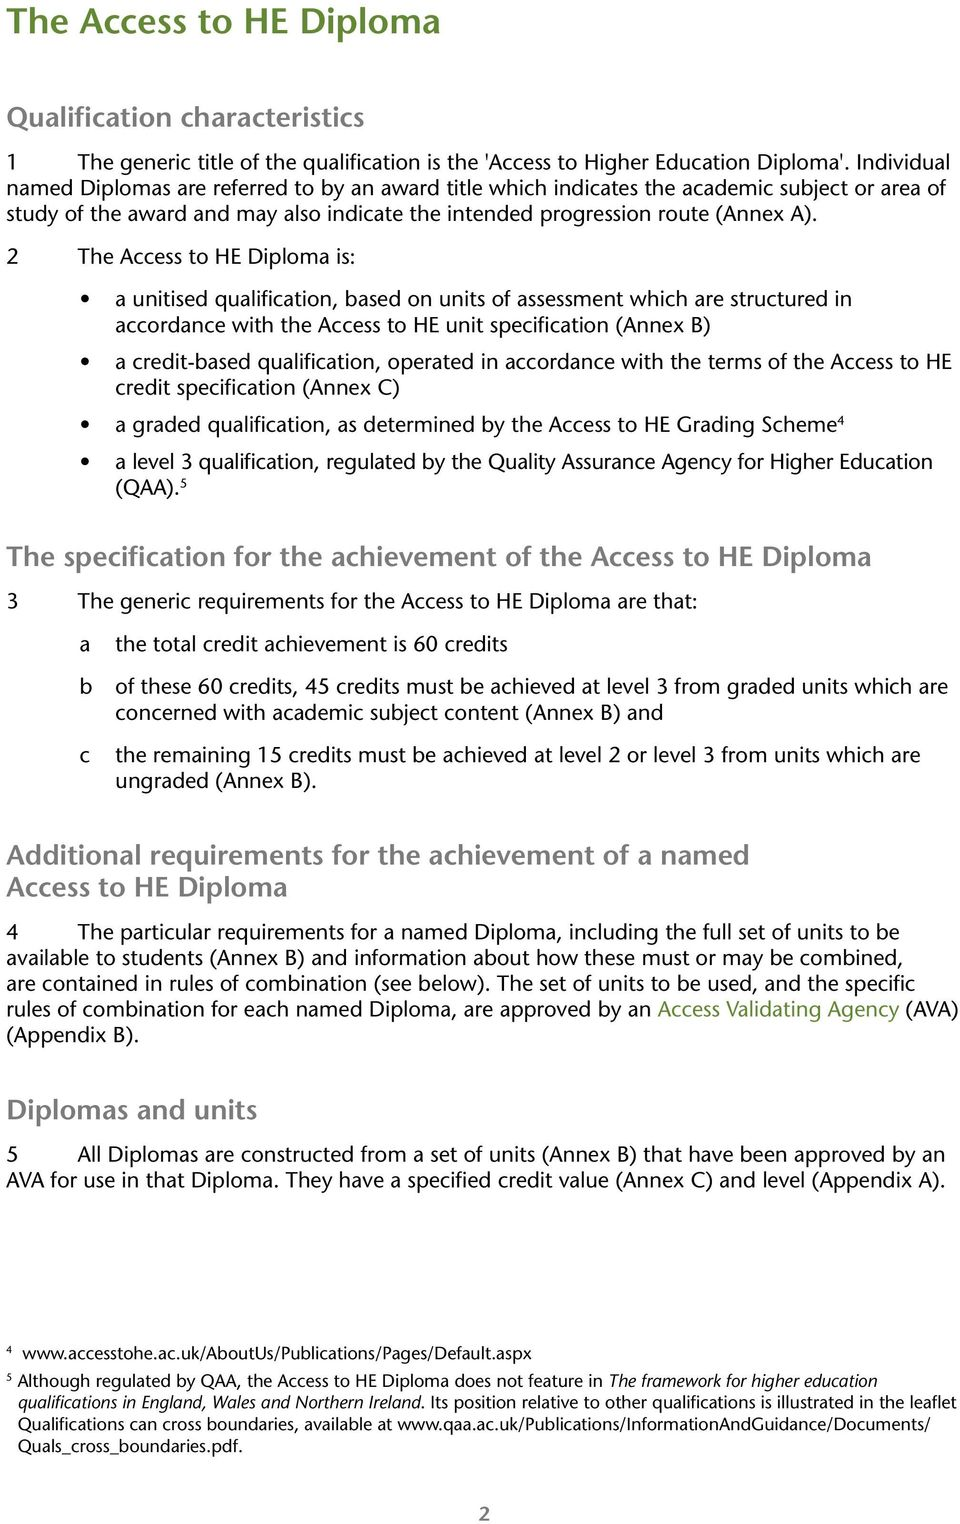 2 The Access to HE Diploma is: a unitised qualification, based on units of assessment which are structured in accordance with the Access to HE unit specification (Annex B) a credit-based